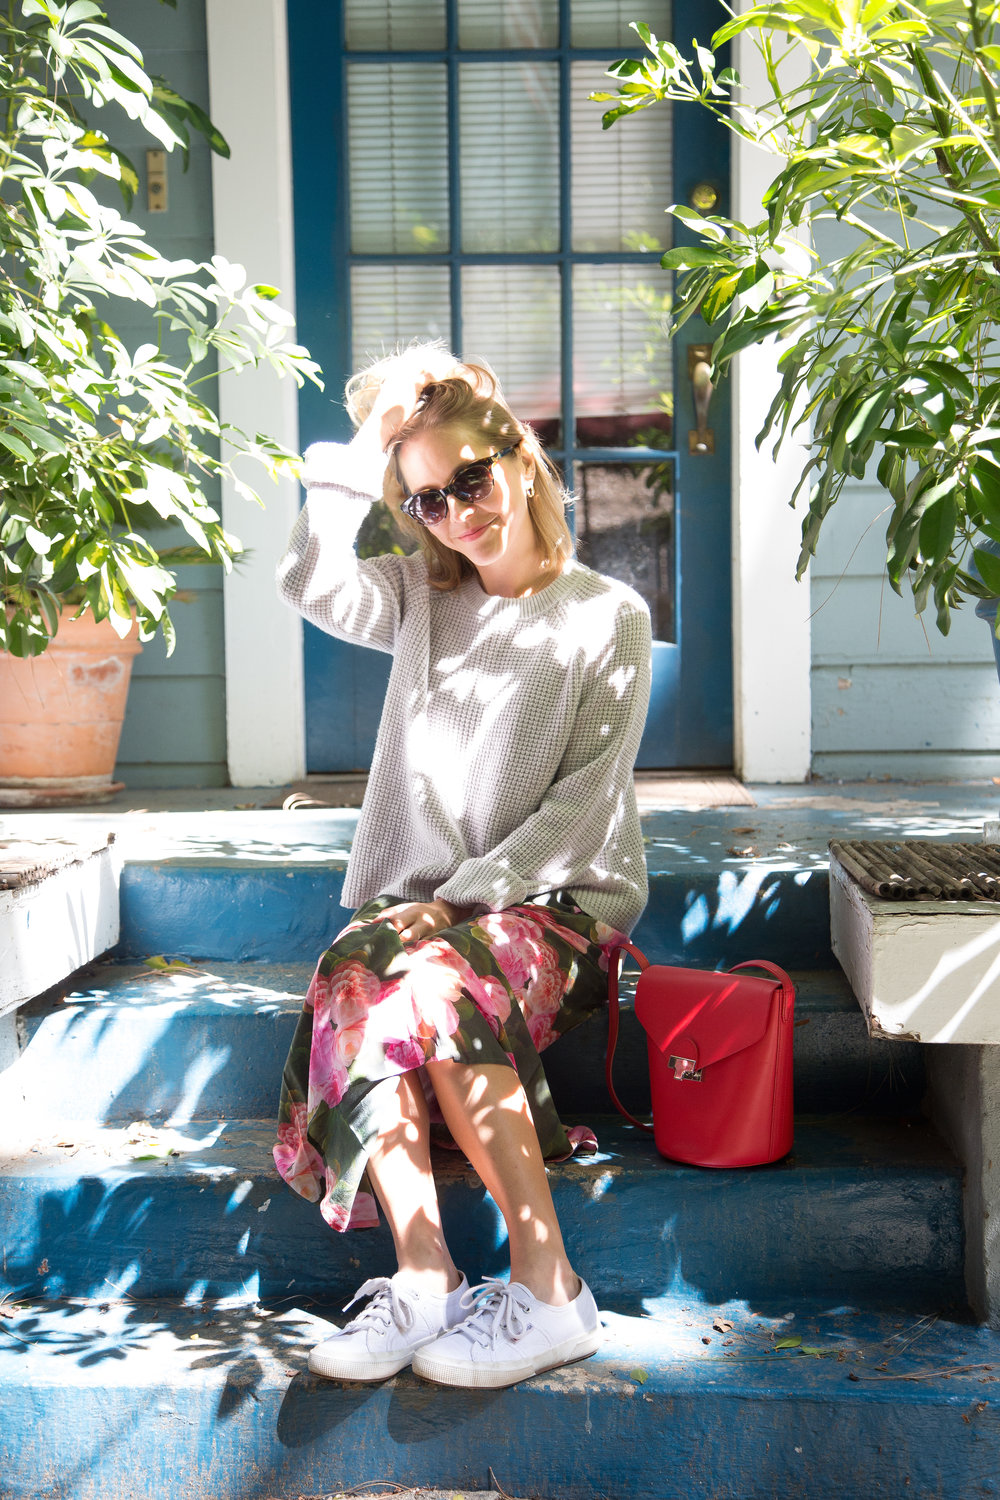 Sweater: Jenni Kayne ,  Dress: The Odells in Silverlake , Bag: Loeffler Randall,  Sneakers: Superga ,  Sunglasses: Warby Parker